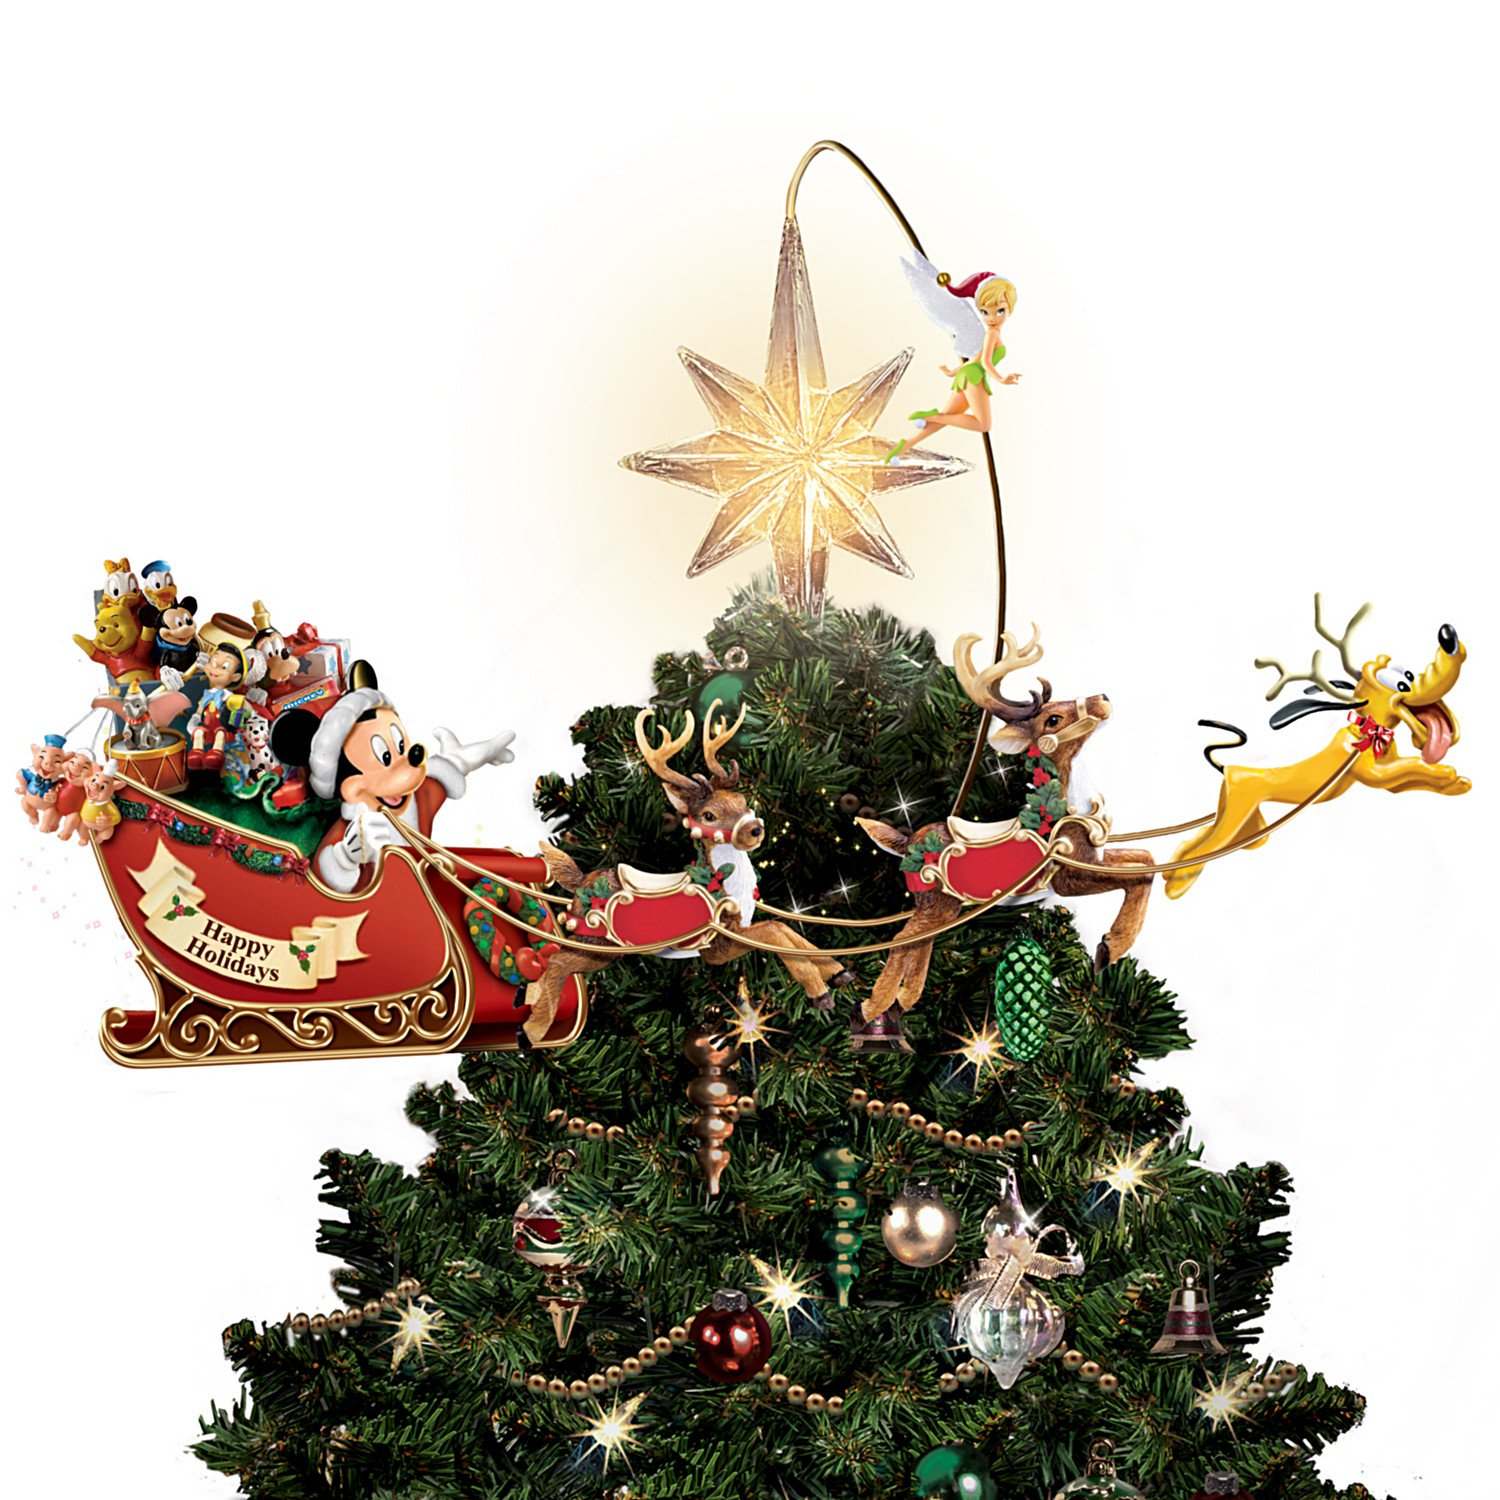 Disney's Timeless Holiday Treasures Illuminated Rotating Tree Topper by The Bradford Exchange 01-10462-001